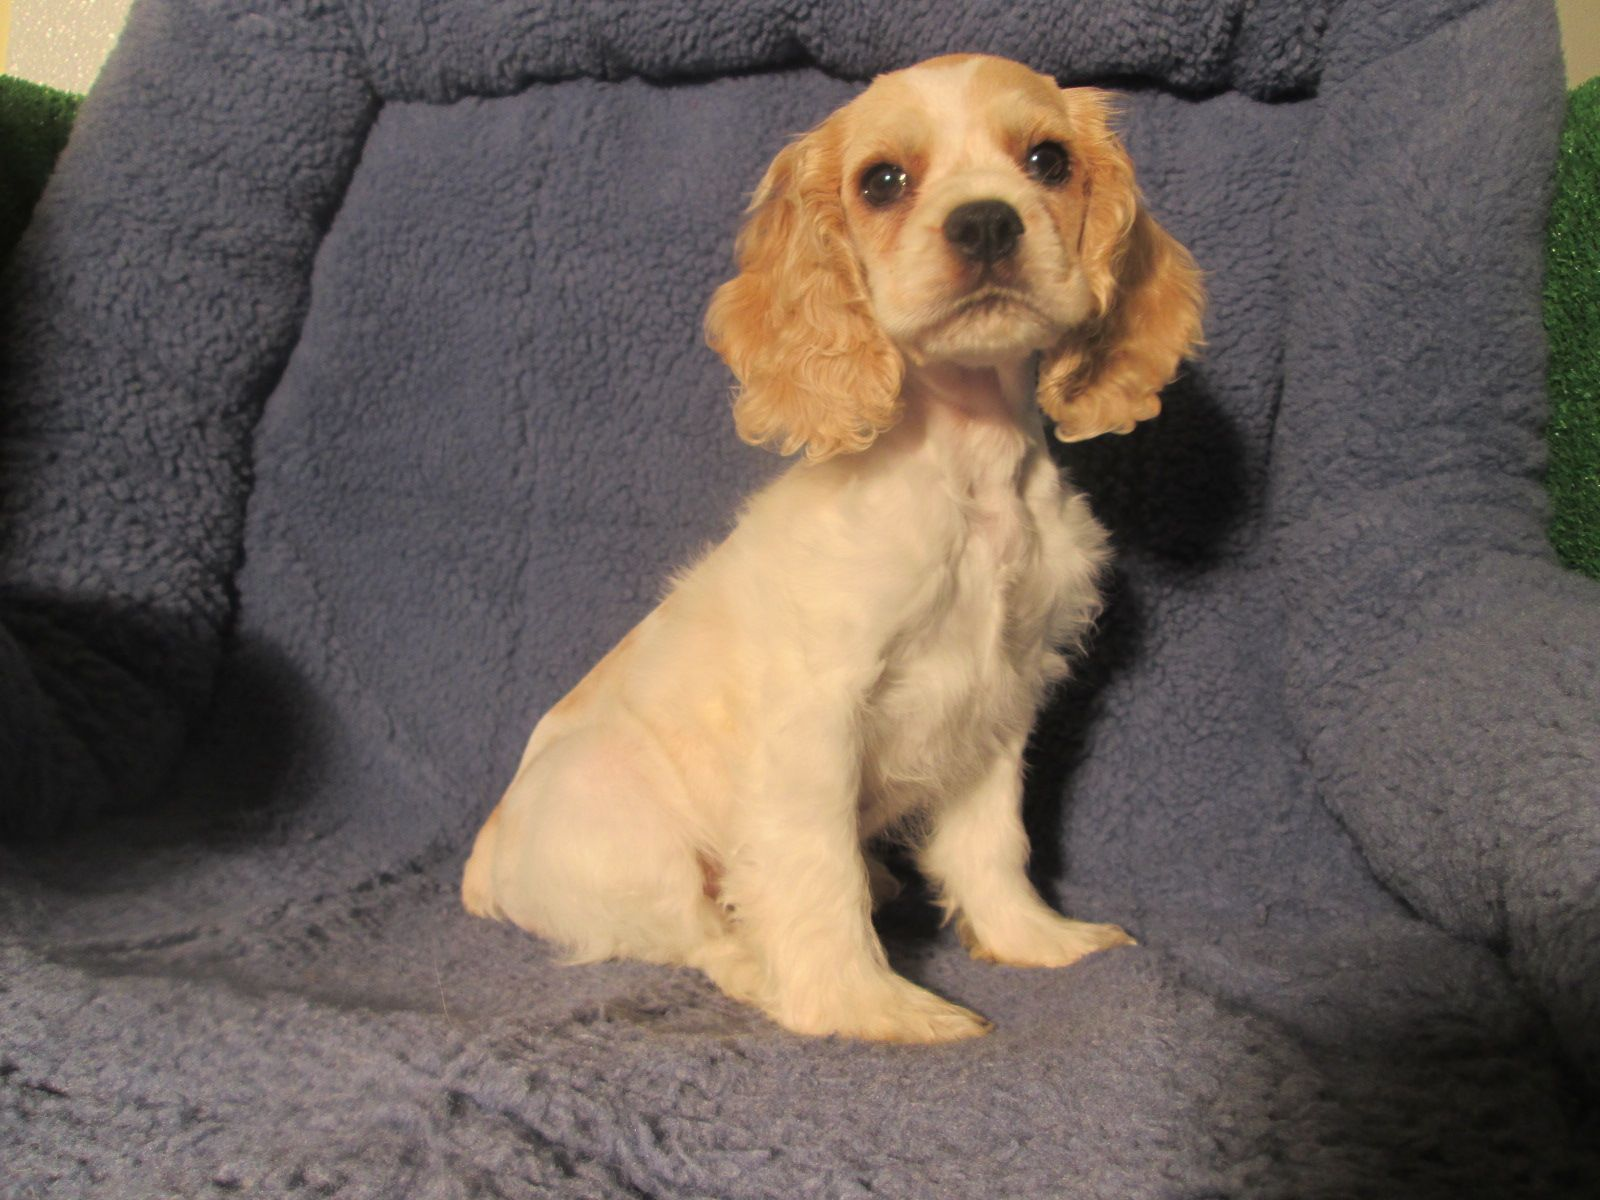 Regal Cocker Spaniel Puppies Available 8 12 Weeks Of Age Permanent Shots And Wormings Completed Along Wi Puppies Cocker Spaniel Puppies Spaniel Puppies